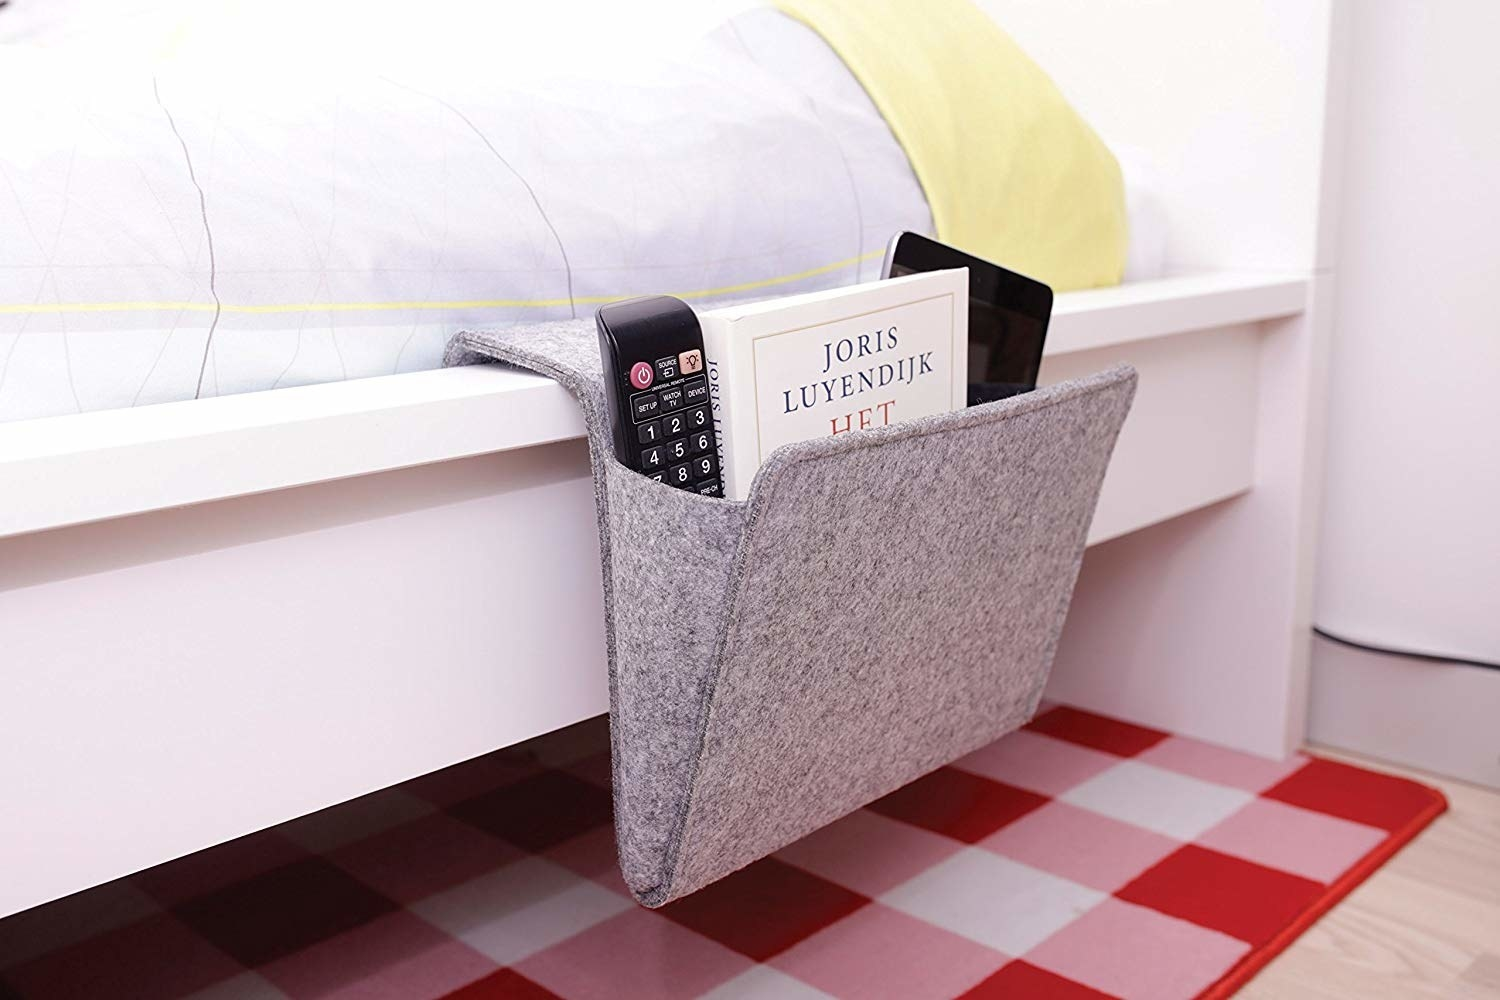 pouch caddy hanging off side of bed with stuff like a book and remote in it